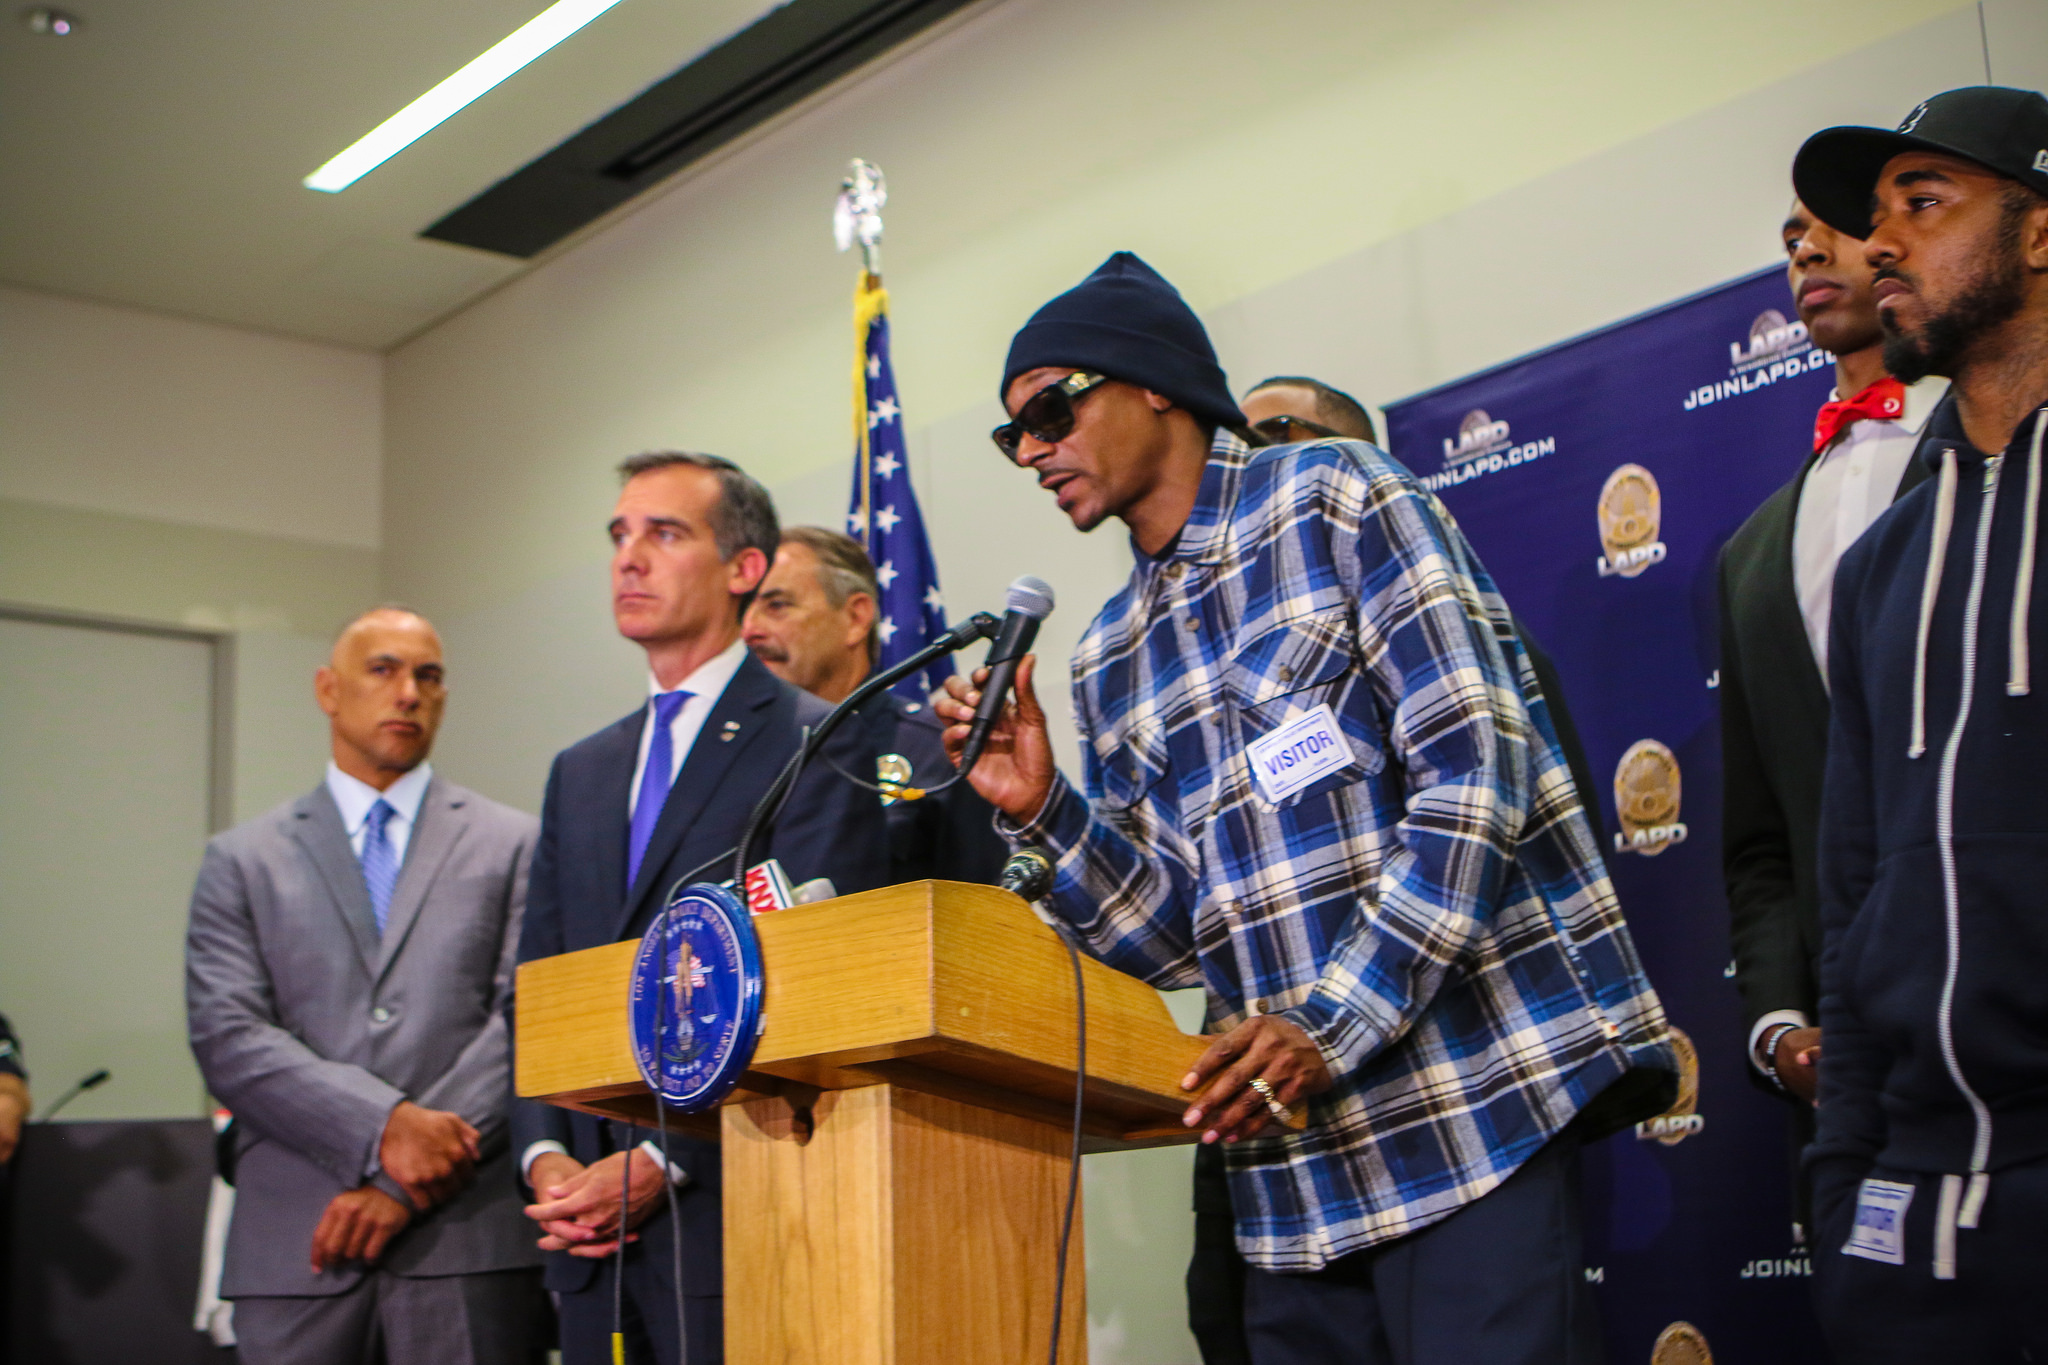 Snoop Dogg speaking at a press conference with LAPD Chief Beck, Mayor Garcetti, The Game, and community members after the police ambush in Dallas. (C) Eric Garcetti. License under CC BY 2.0.